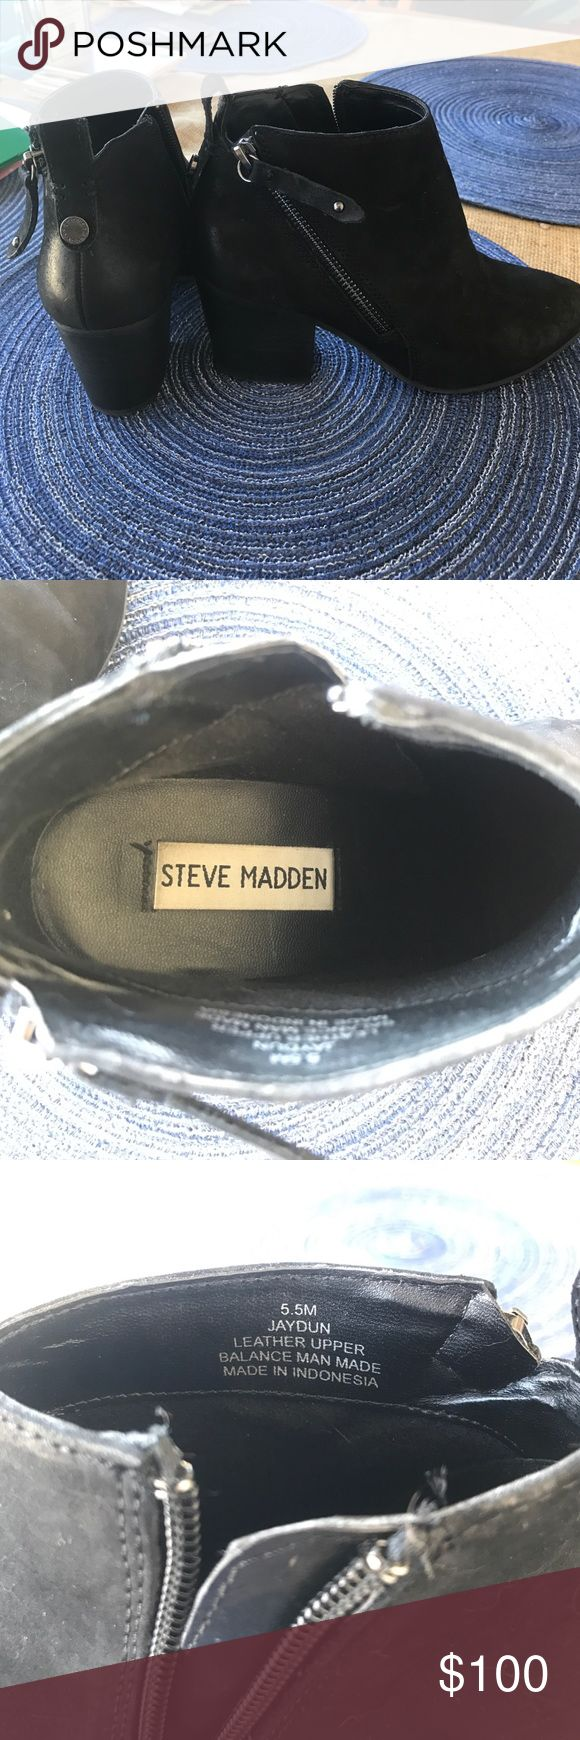 Steve Madden Booties Selling Steve Madden booties! Only worn twice.  Size 5.5. Leather.  Light scuffs on toes and sides. Steve Madden Shoes Ankle Boots & Booties